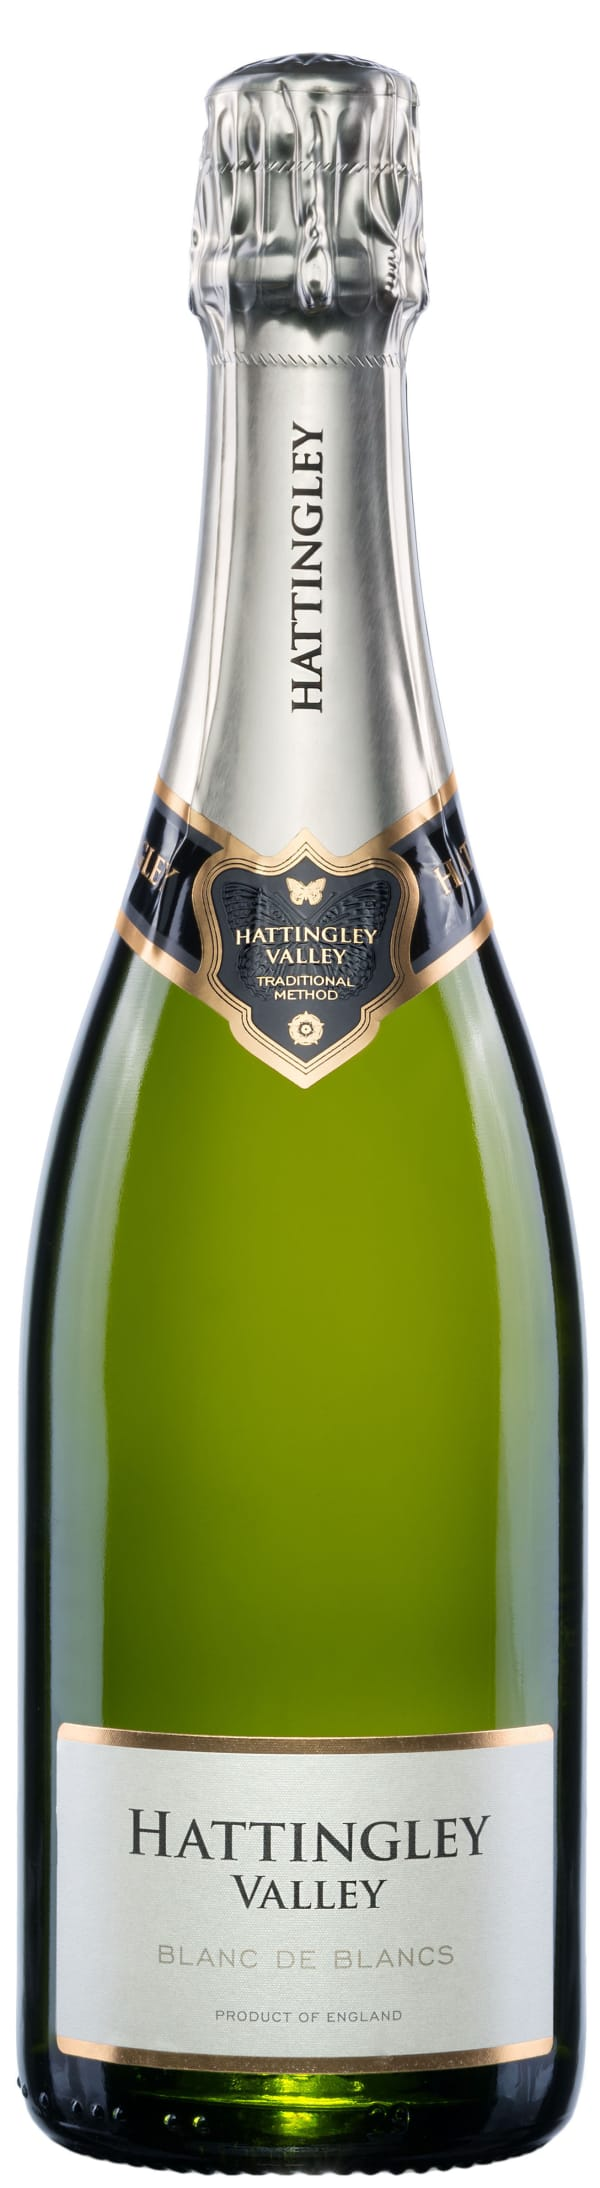 Hattingley Valley Blanc de Blancs Brut 2011